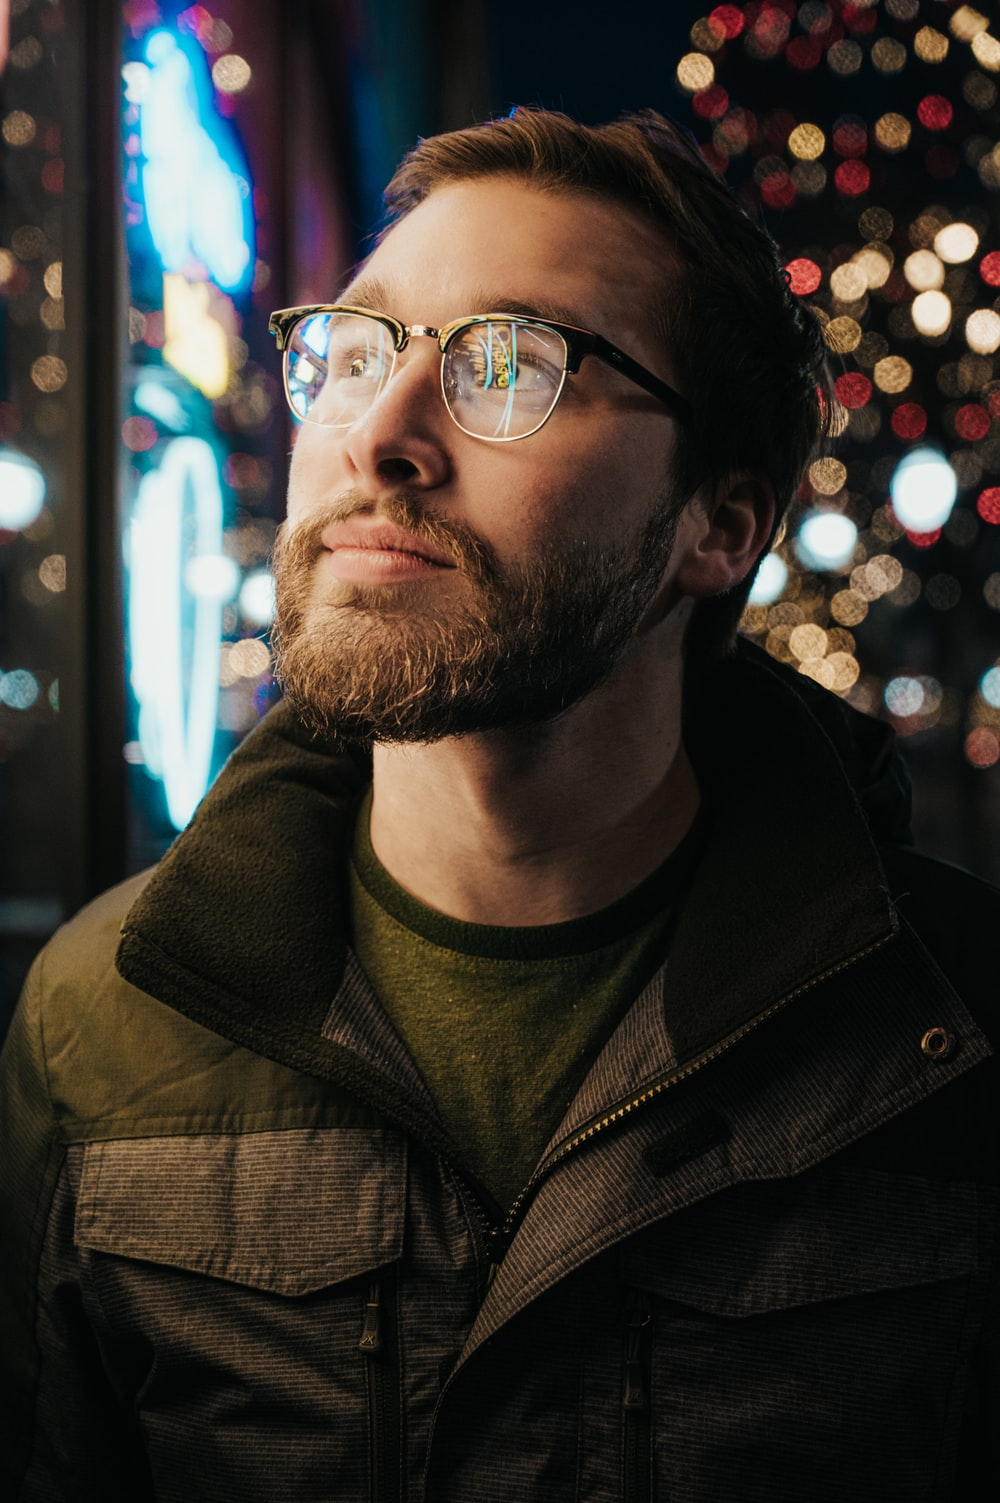 man in gray and green collared jacket wearing eyeglasses with turned-on lights